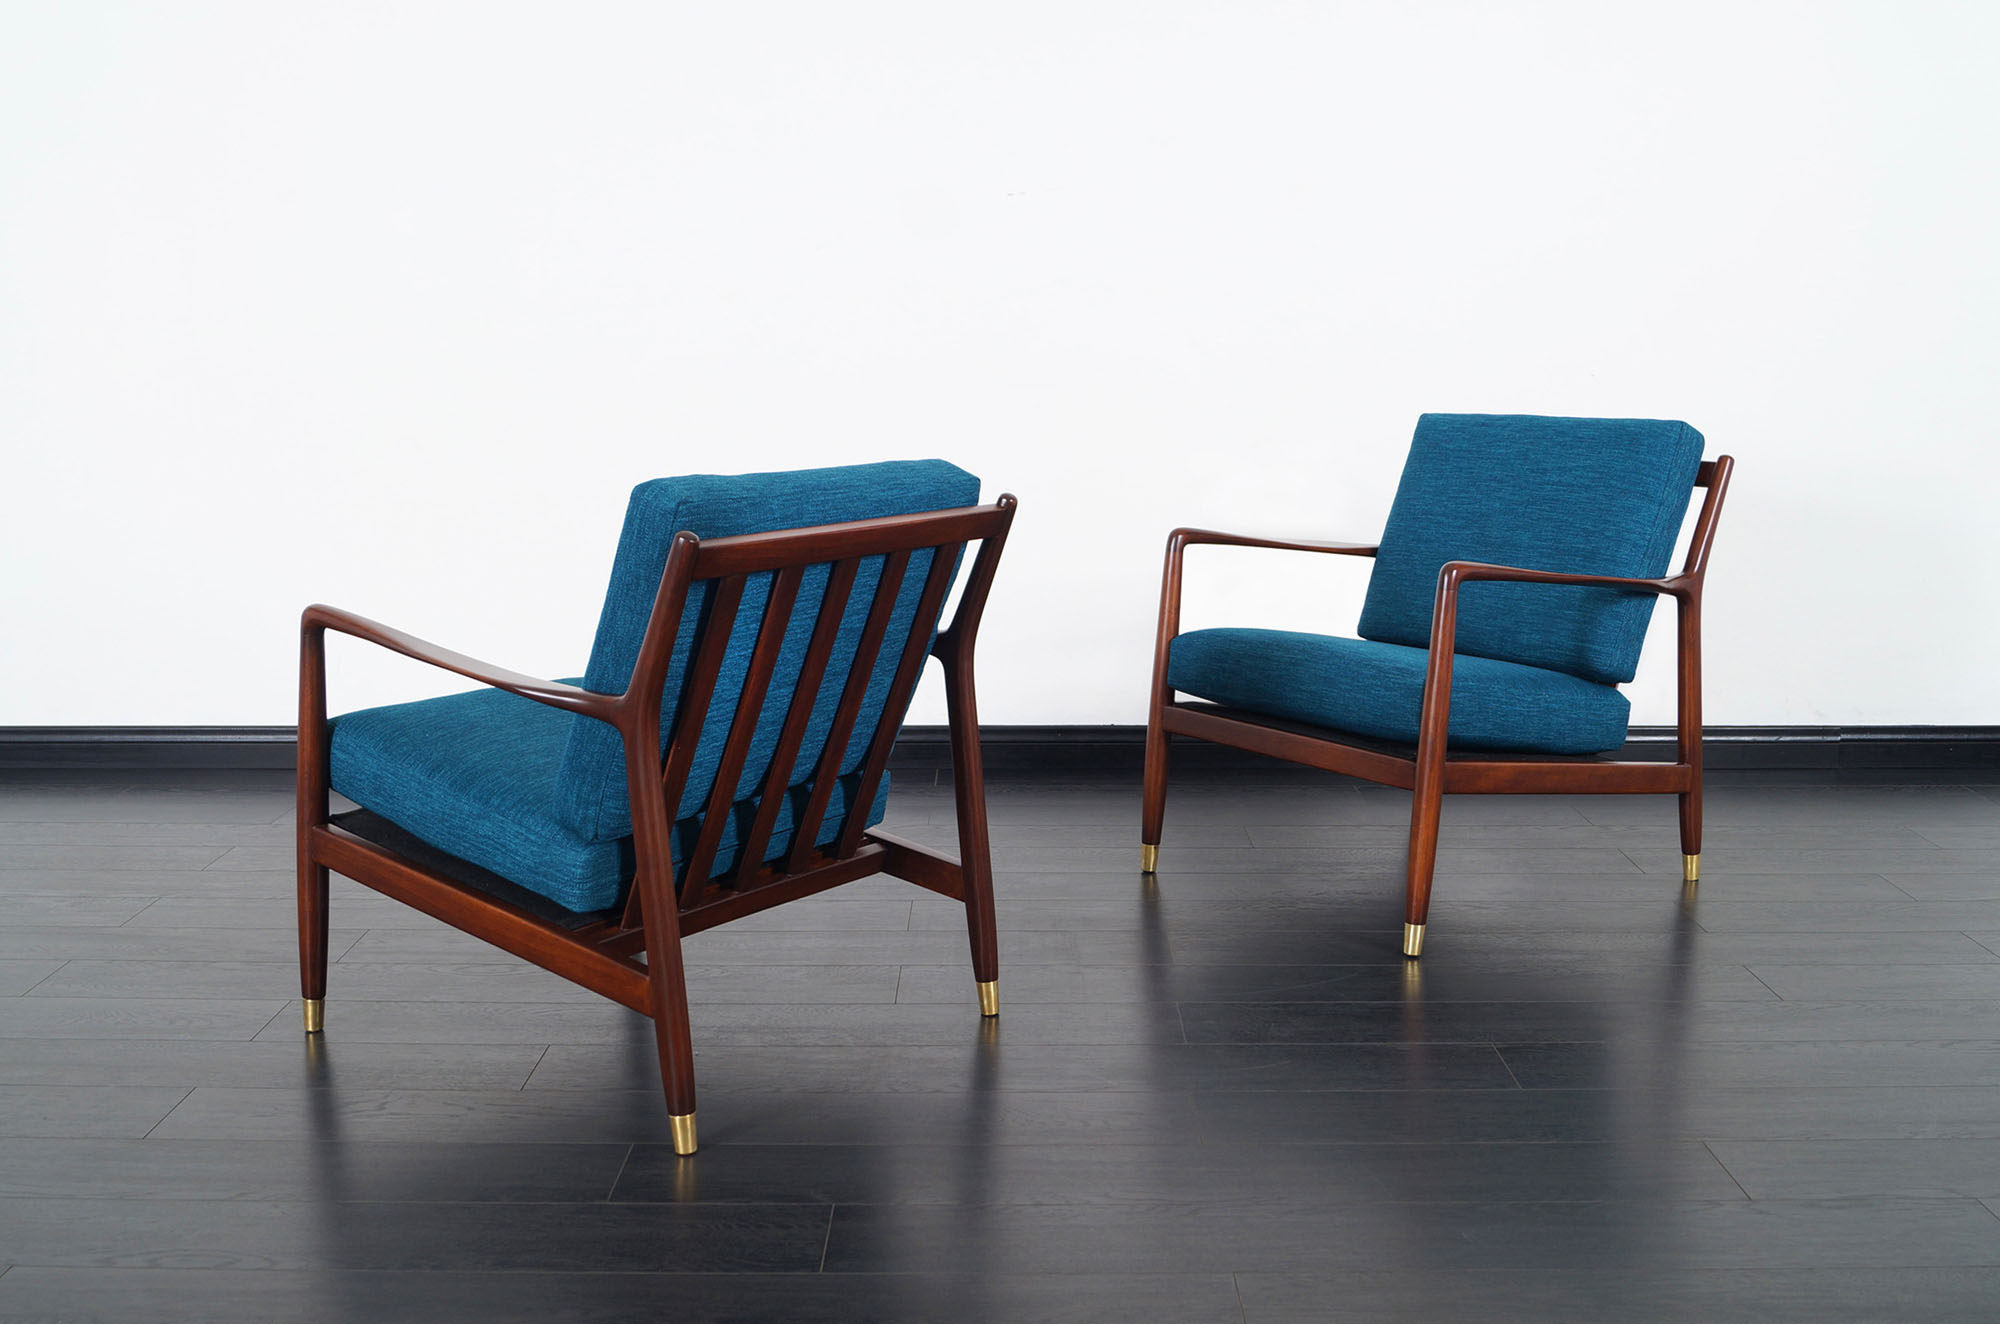 Vintage Lounge Chairs by Folke Ohlsson